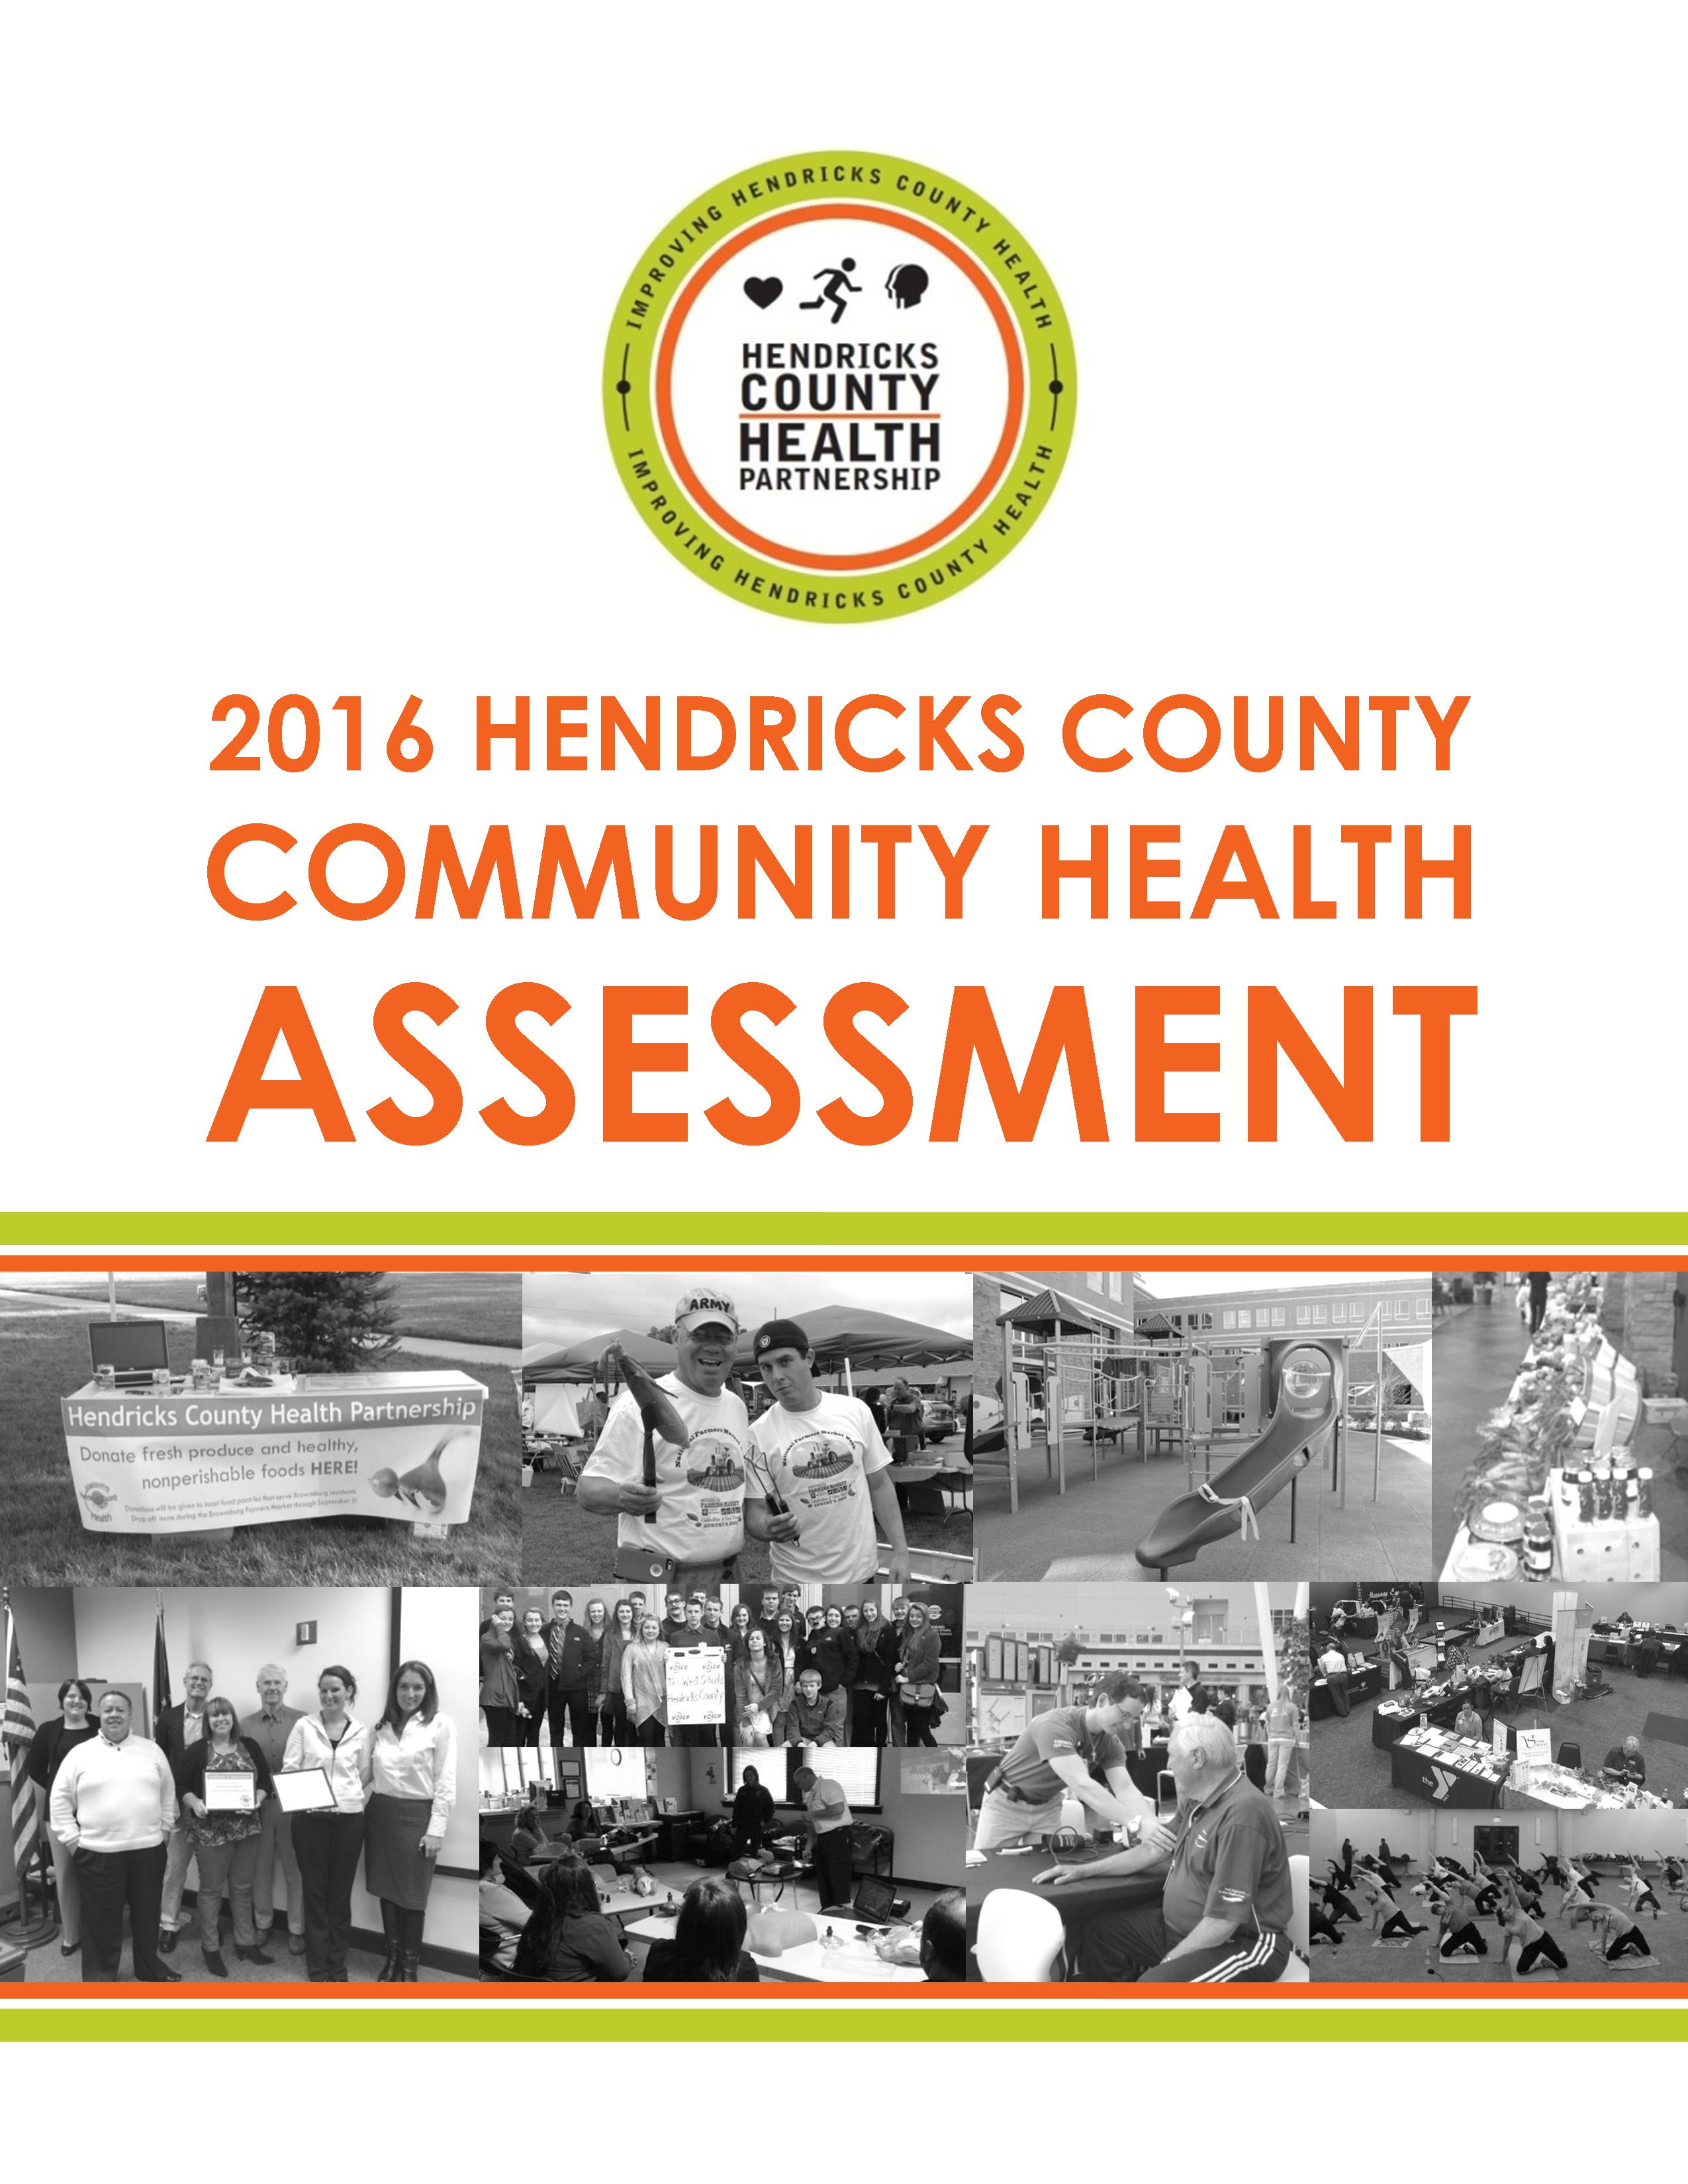 2016 Hendricks County Community Health Assessment